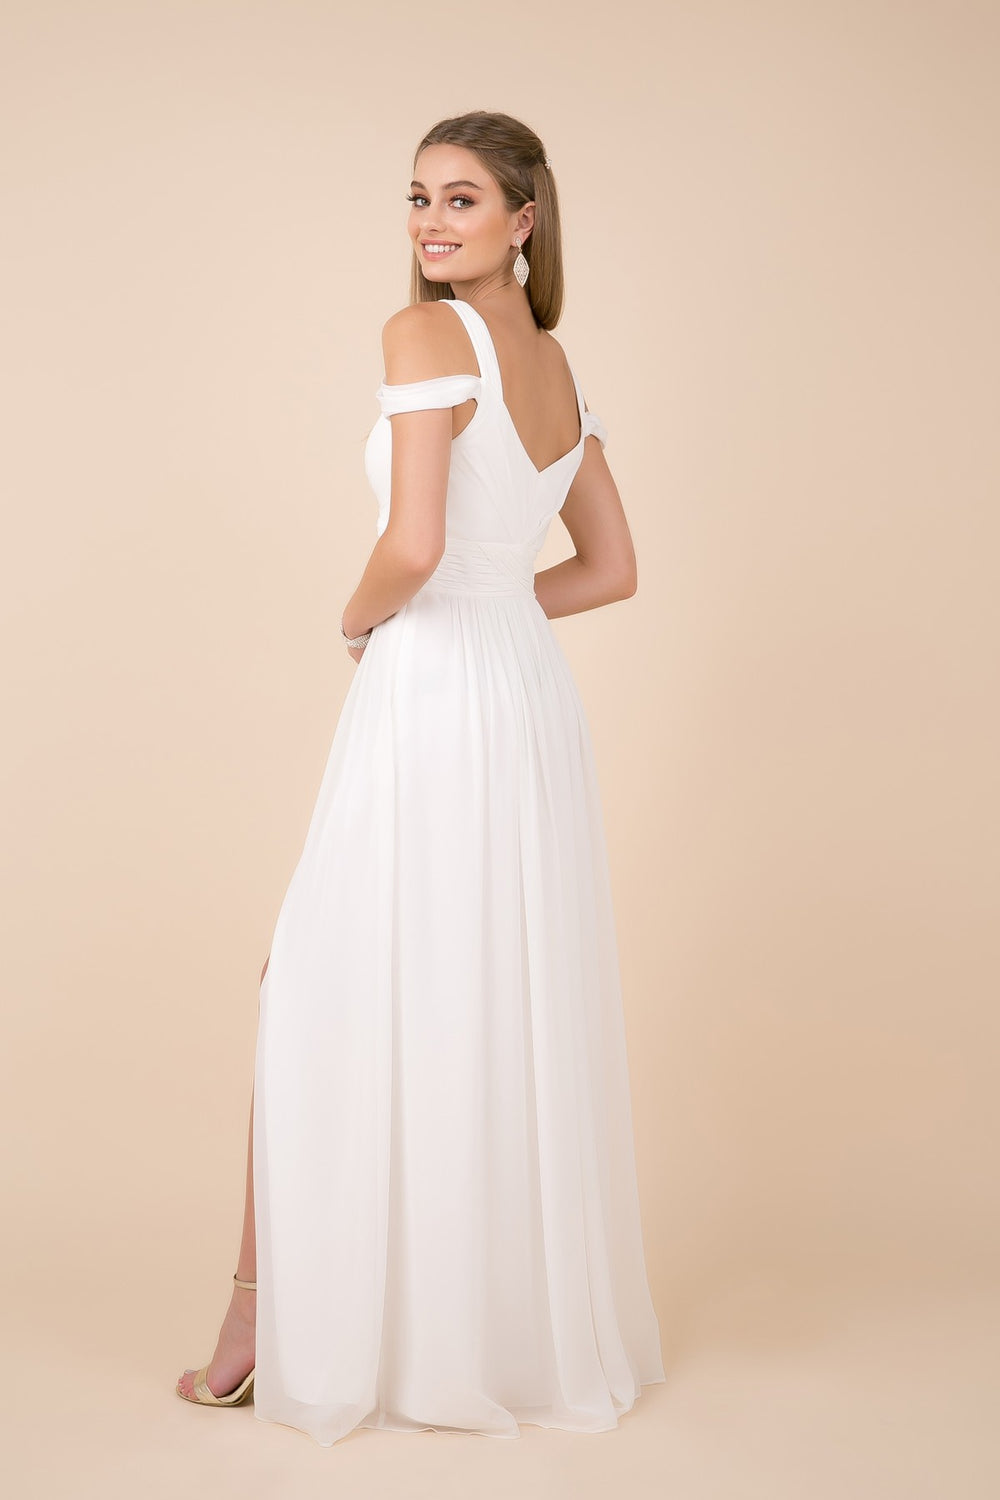 COLD-SHOULDER WITH SLIP SKIRT LONG CHIFFON DRESS_Y277 BY NARIANNA